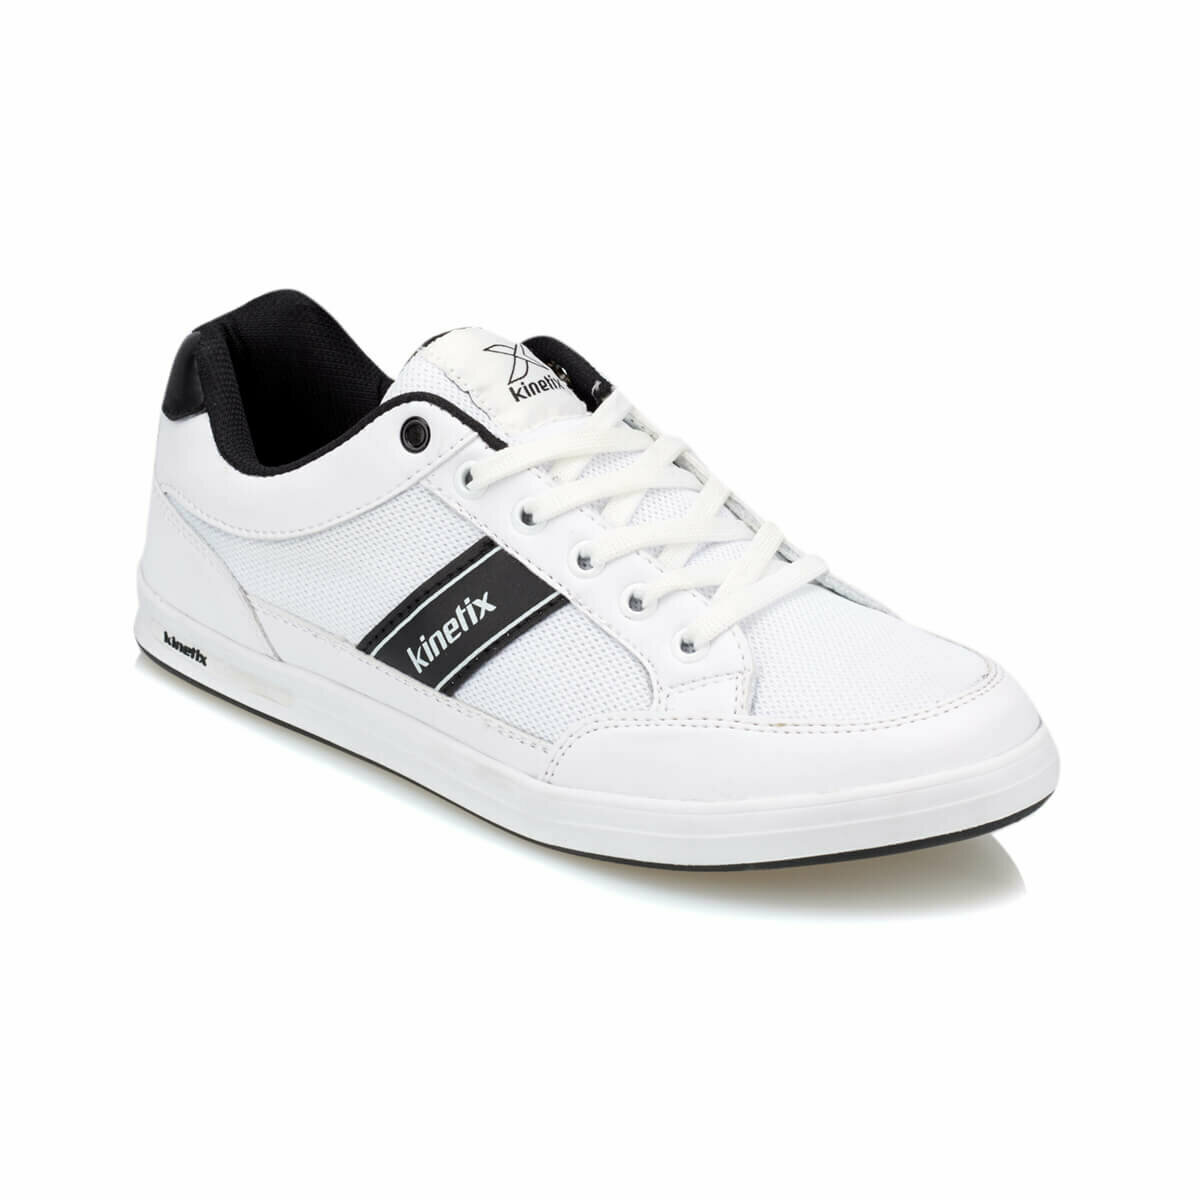 FLO VALOR White Men 'S Sneaker Shoes KINETIX